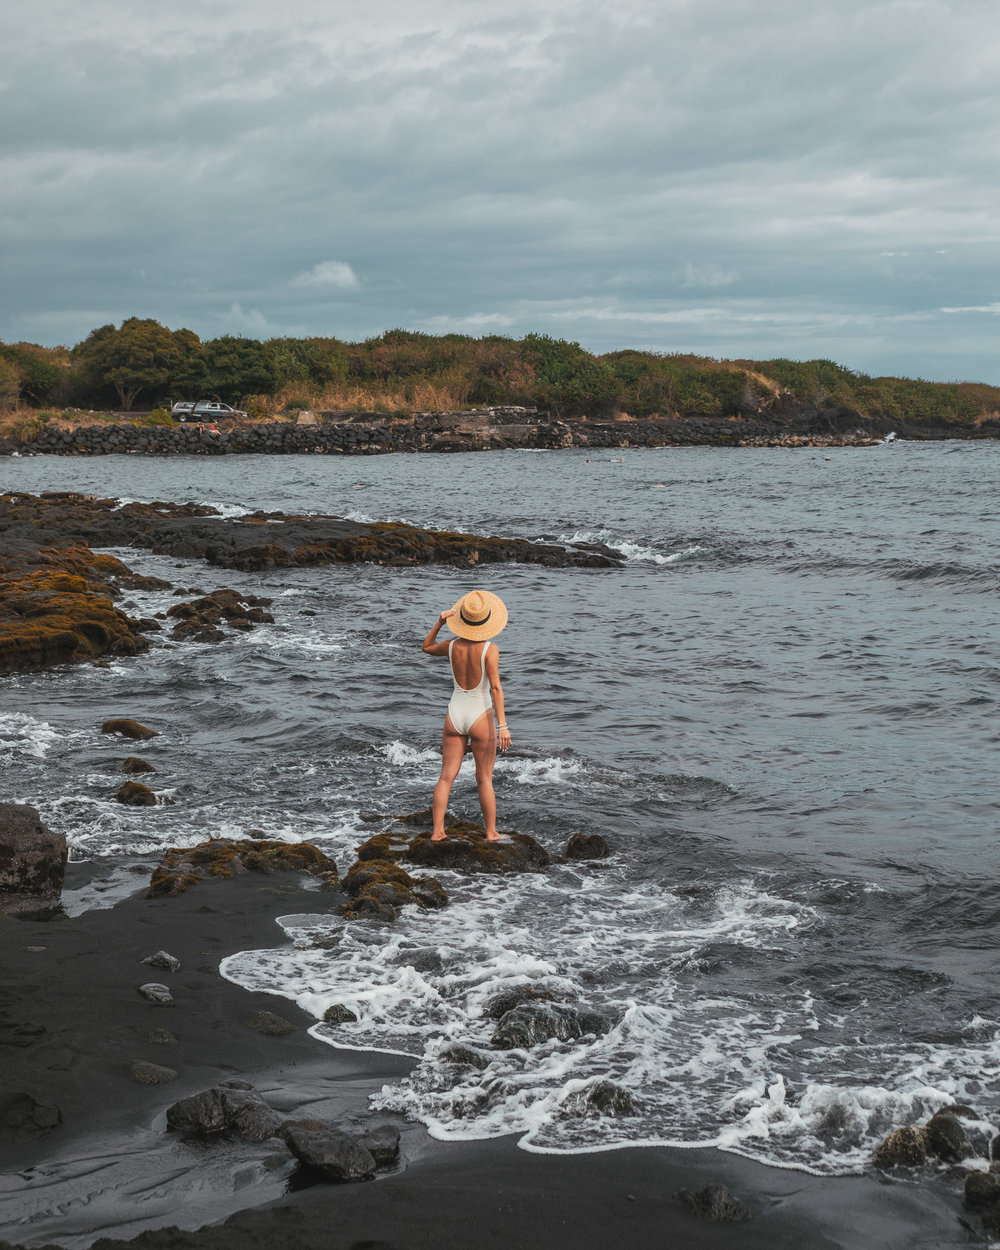 Black Sand Beach  // 10 Things You Have to Do on the Big Island of Hawaii // www.readysetjetset.net #readysetjetset #hawaii #bigisland #blogpost #hawaiiguide